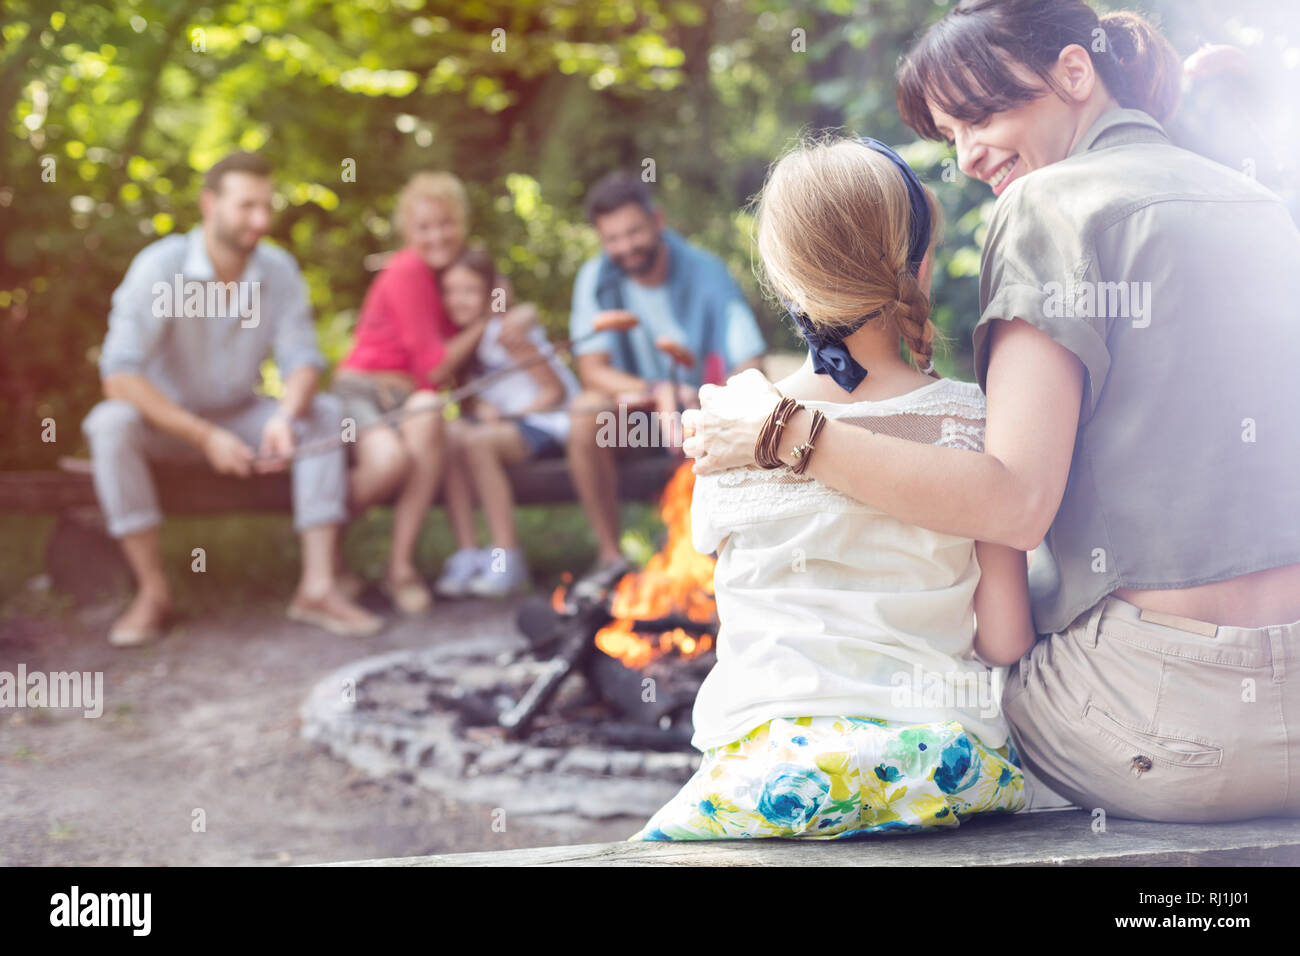 Rear view of mother sitting with arm around daughter while camping at park - Stock Image